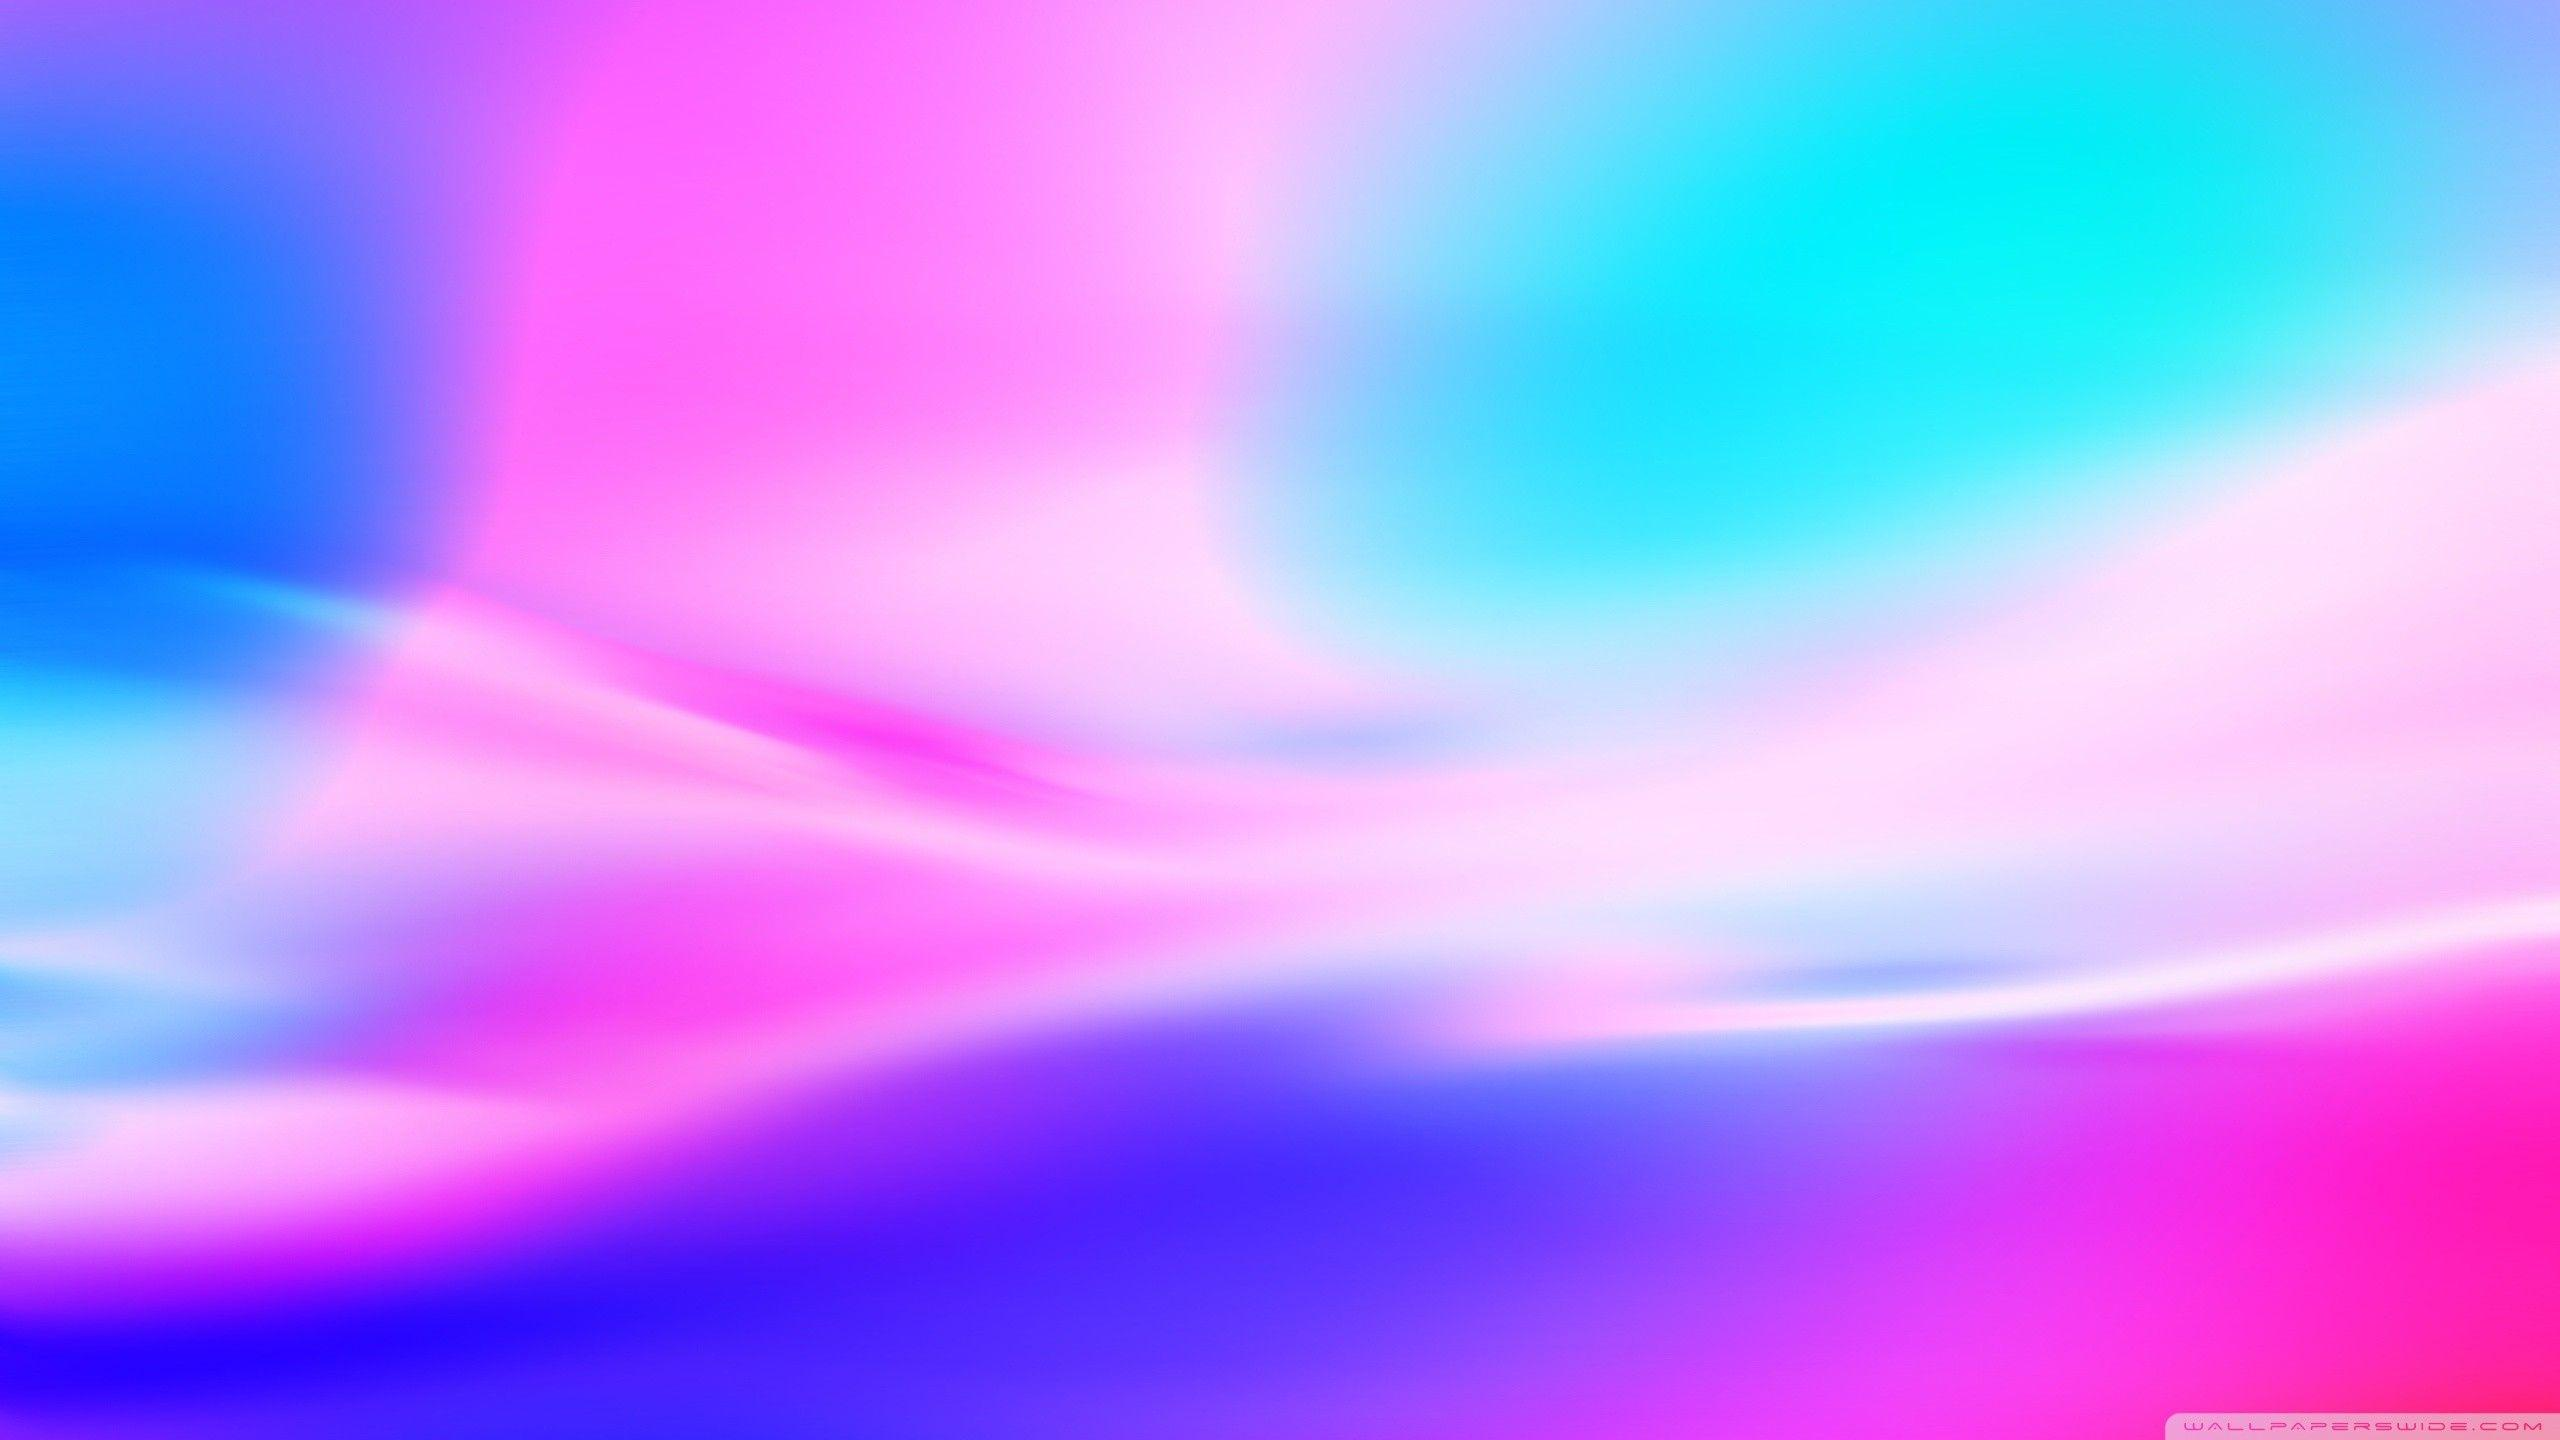 Blue And Pink Backgrounds - Wallpaper Cave